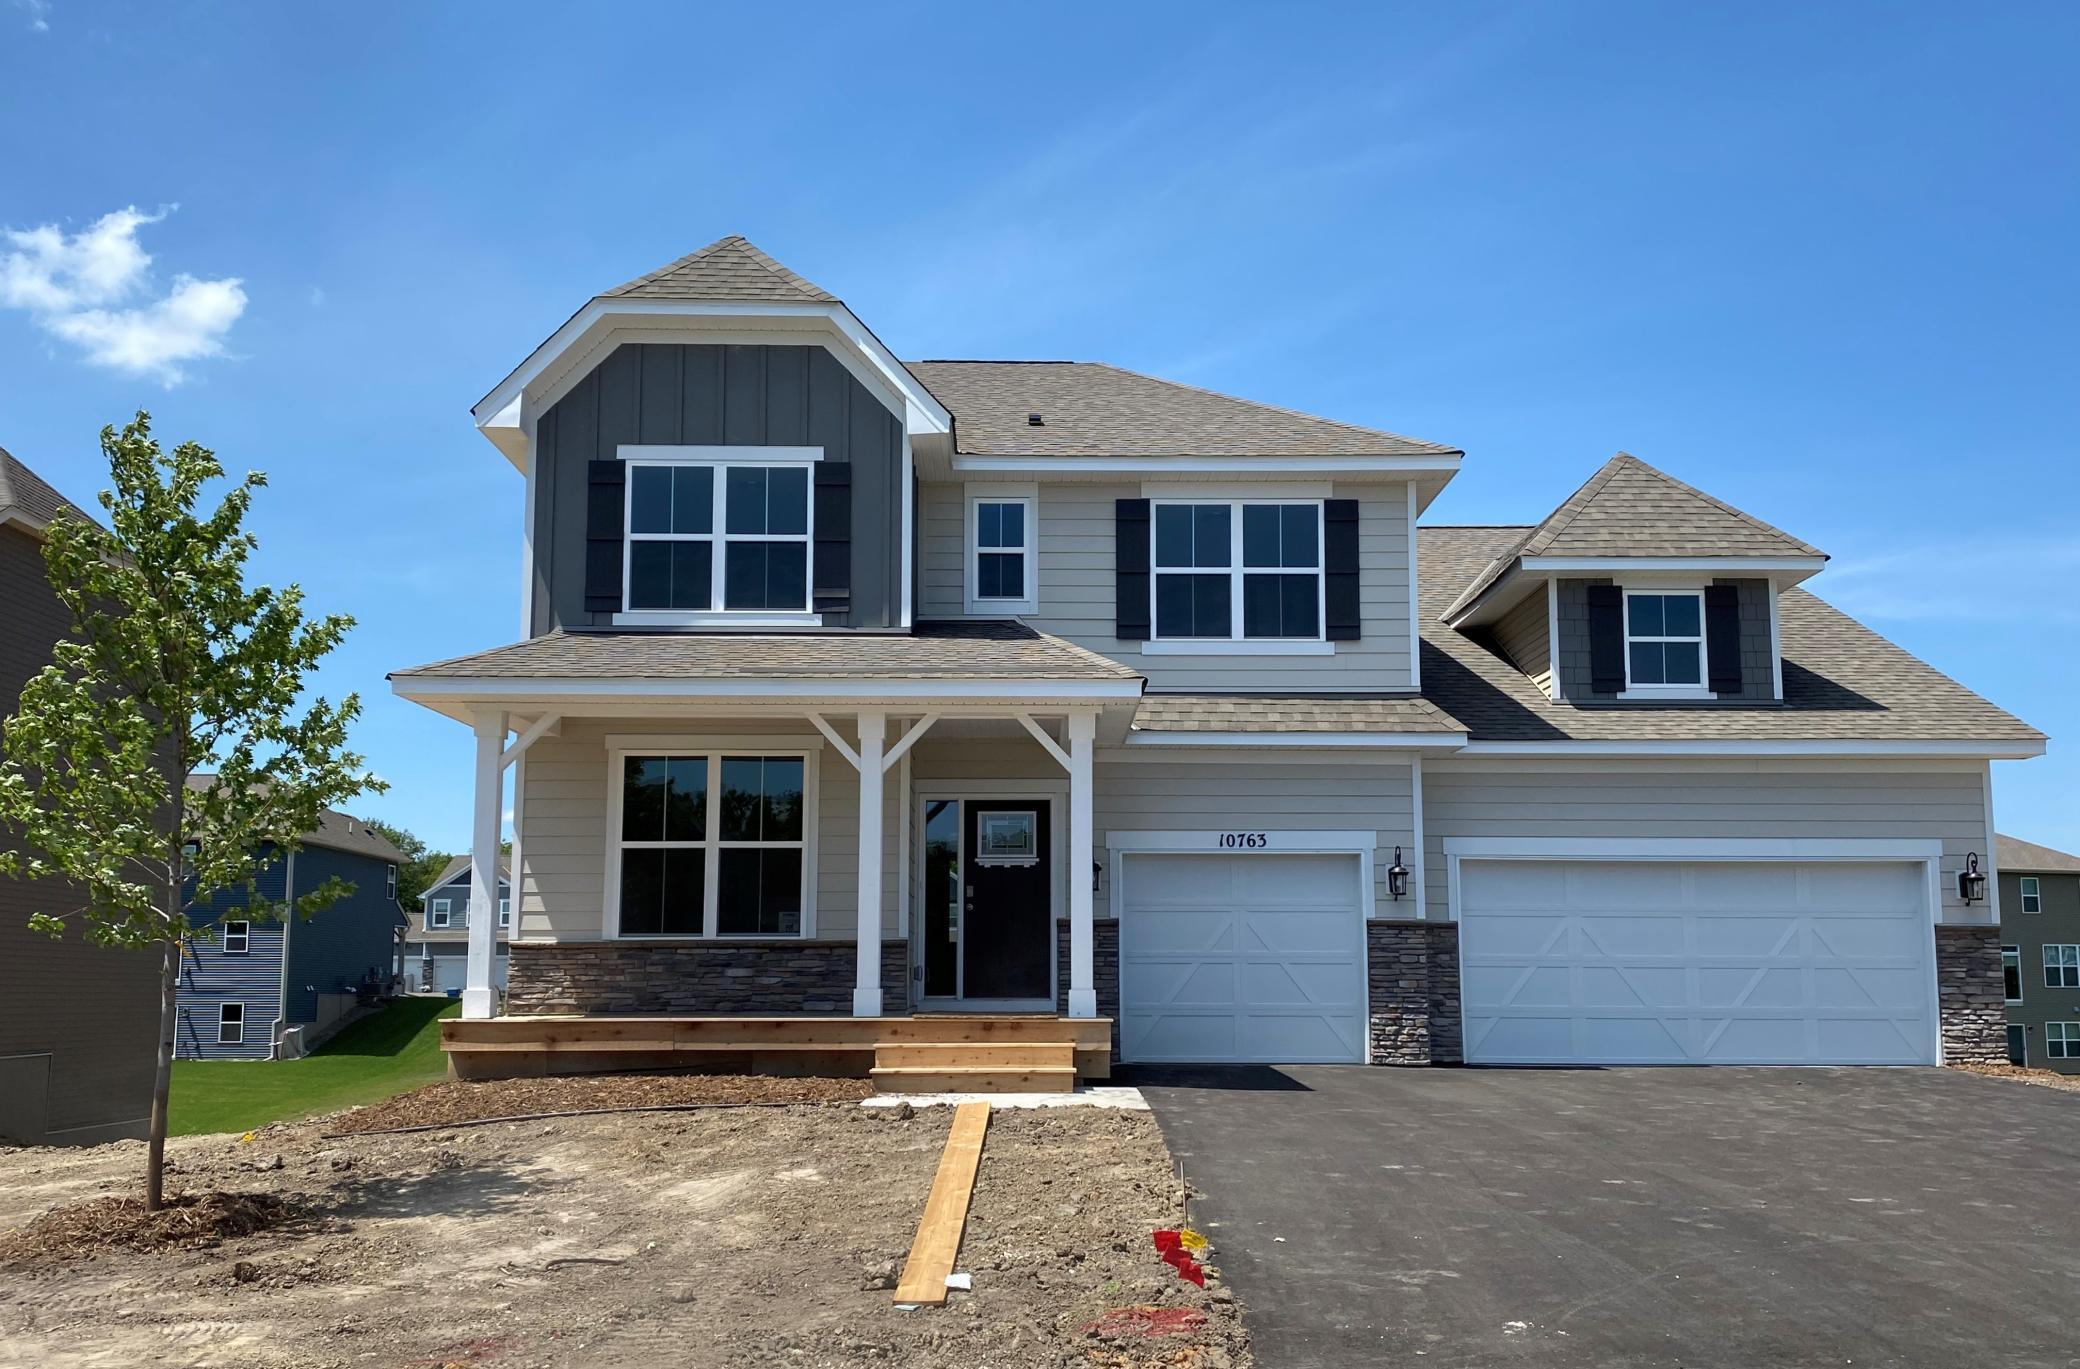 10763 Orchid N Property Photo - Maple Grove, MN real estate listing